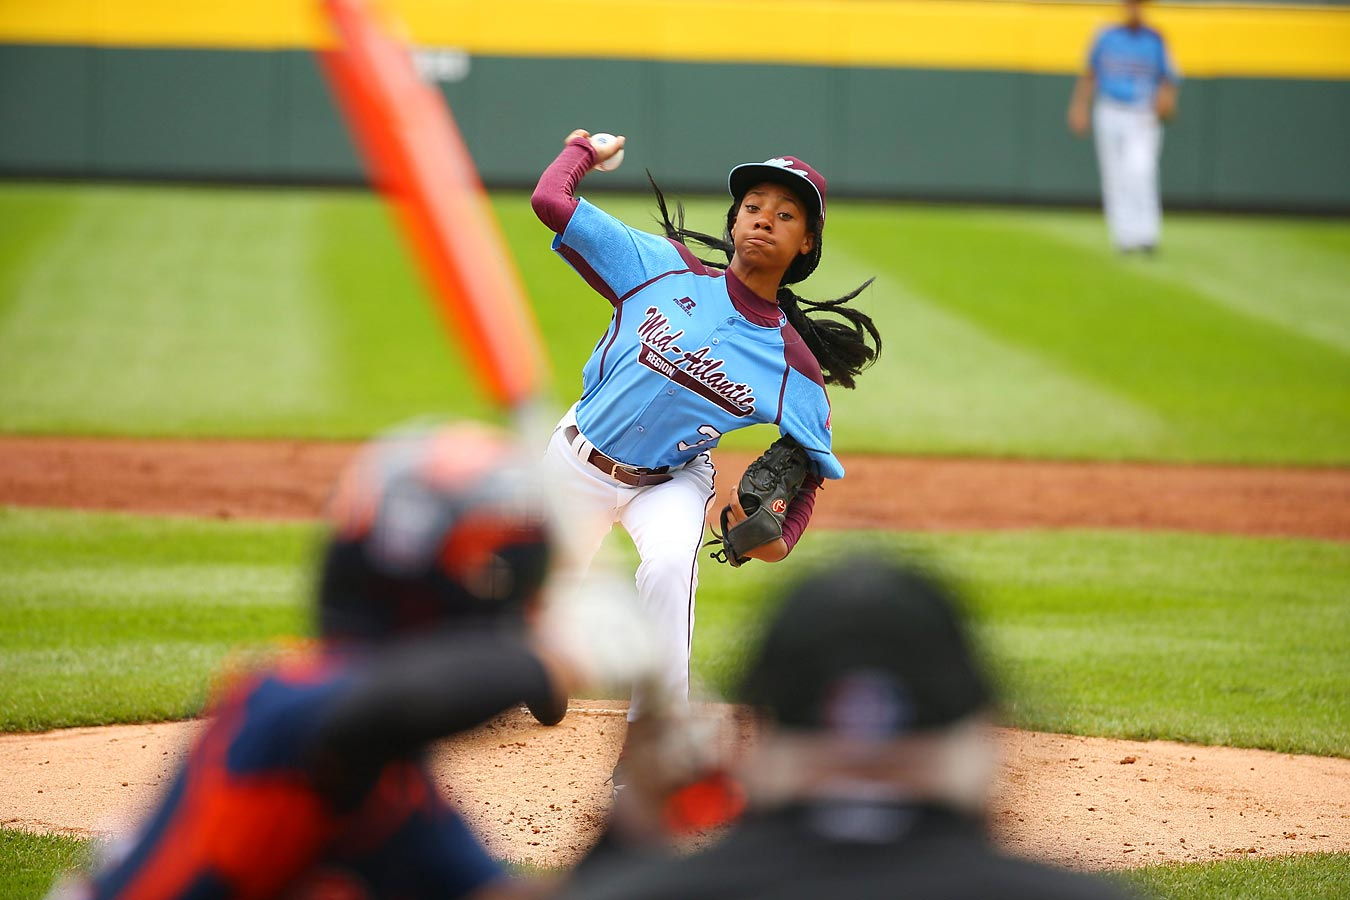 Thirteen-year-old sensation Mo'ne Davis, who plays for Philadelphia's Taney Dragons, has captured the nation's attention with her performance at the Little League World Series. SI made the 5-foot-4 inch, 111-pound eighth grader the cover subject of this week's issue and sent a photographer to South Williamsport to follow her and the team. Here are the best shots from that assignment.